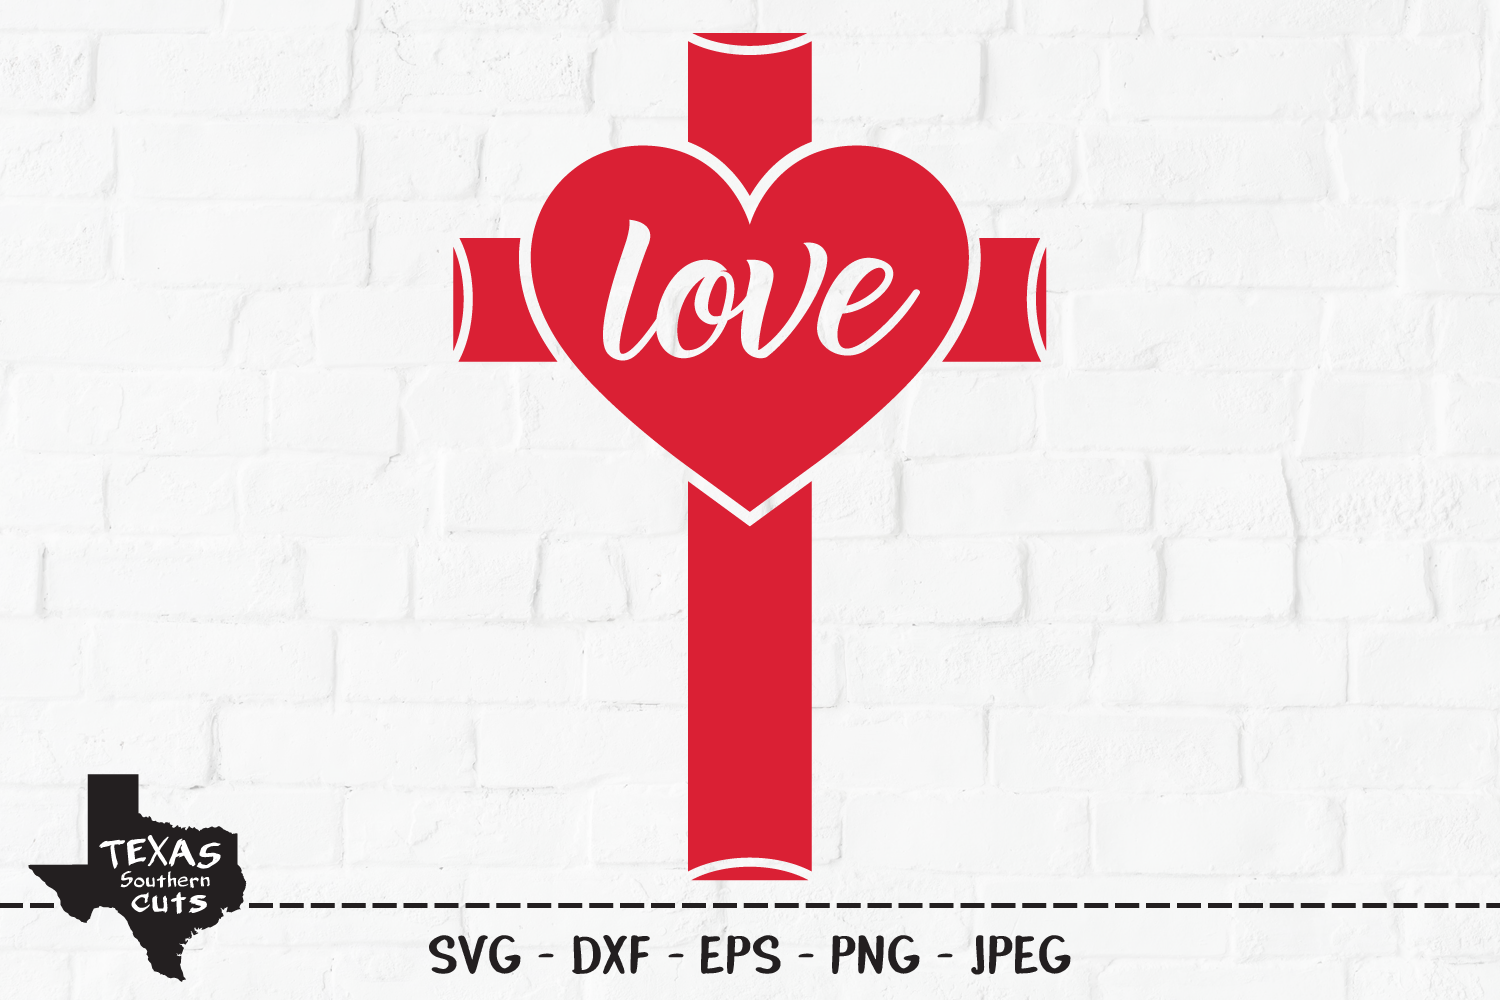 Download Free Love Cross Christian Shirt Design Graphic By Texassoutherncuts for Cricut Explore, Silhouette and other cutting machines.